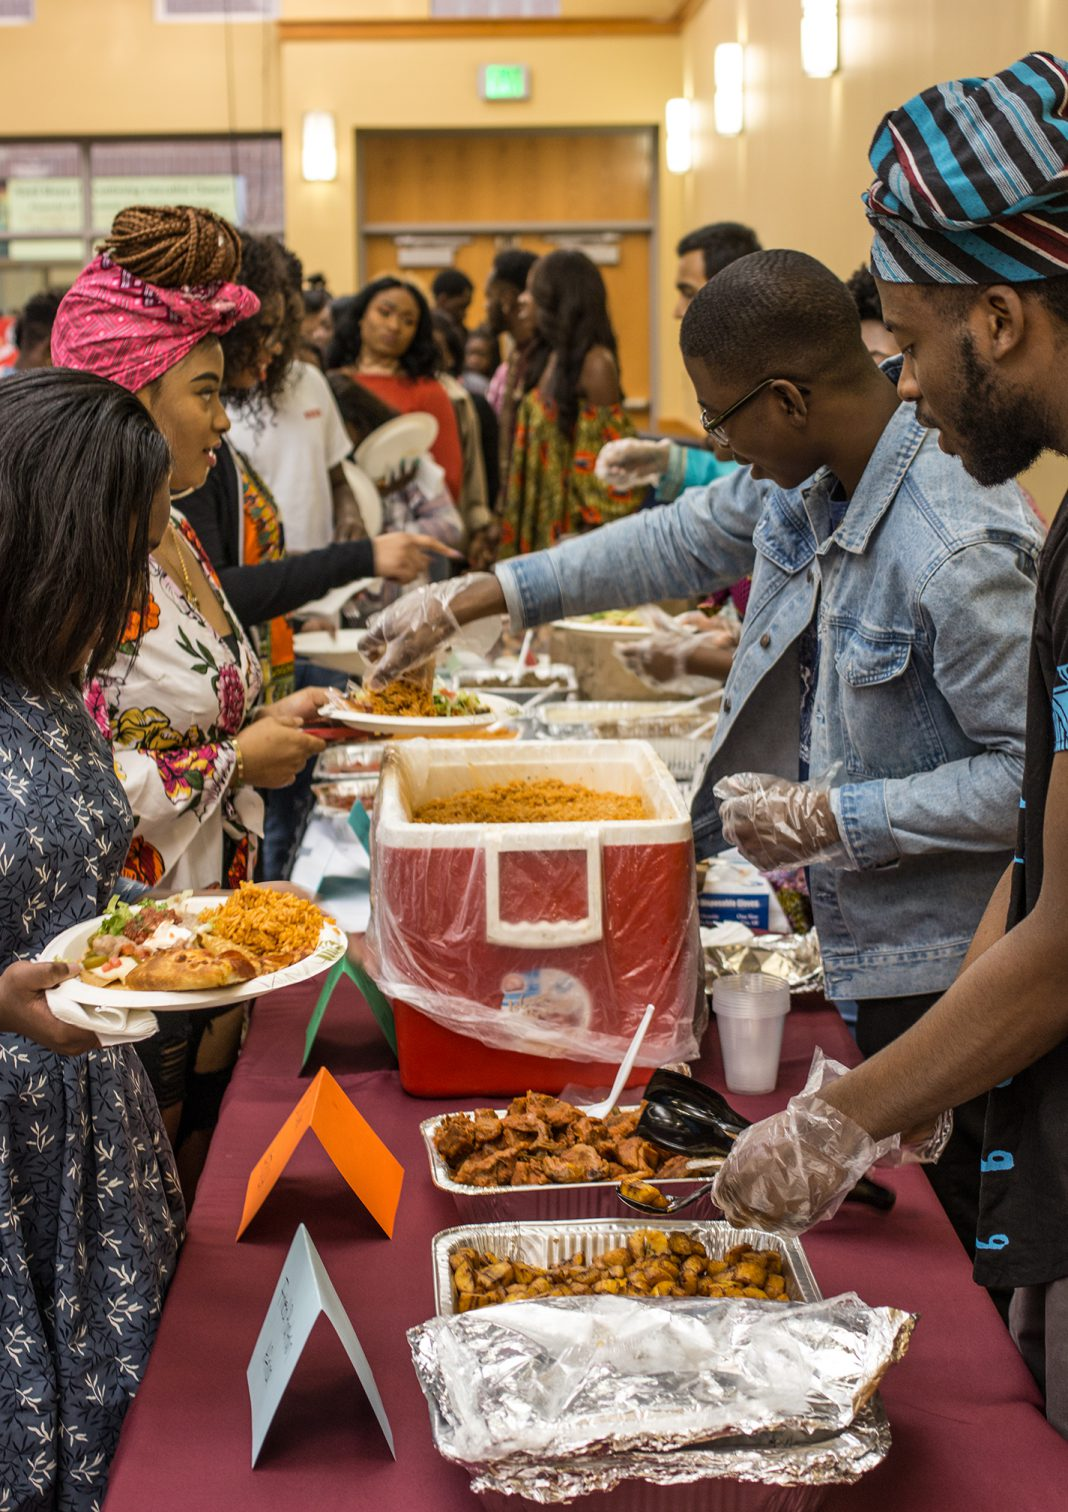 SE students join together to share a meal for Multicultural Day on April 4. The event was hosted by the African Culture Club and featured traditional African foods.